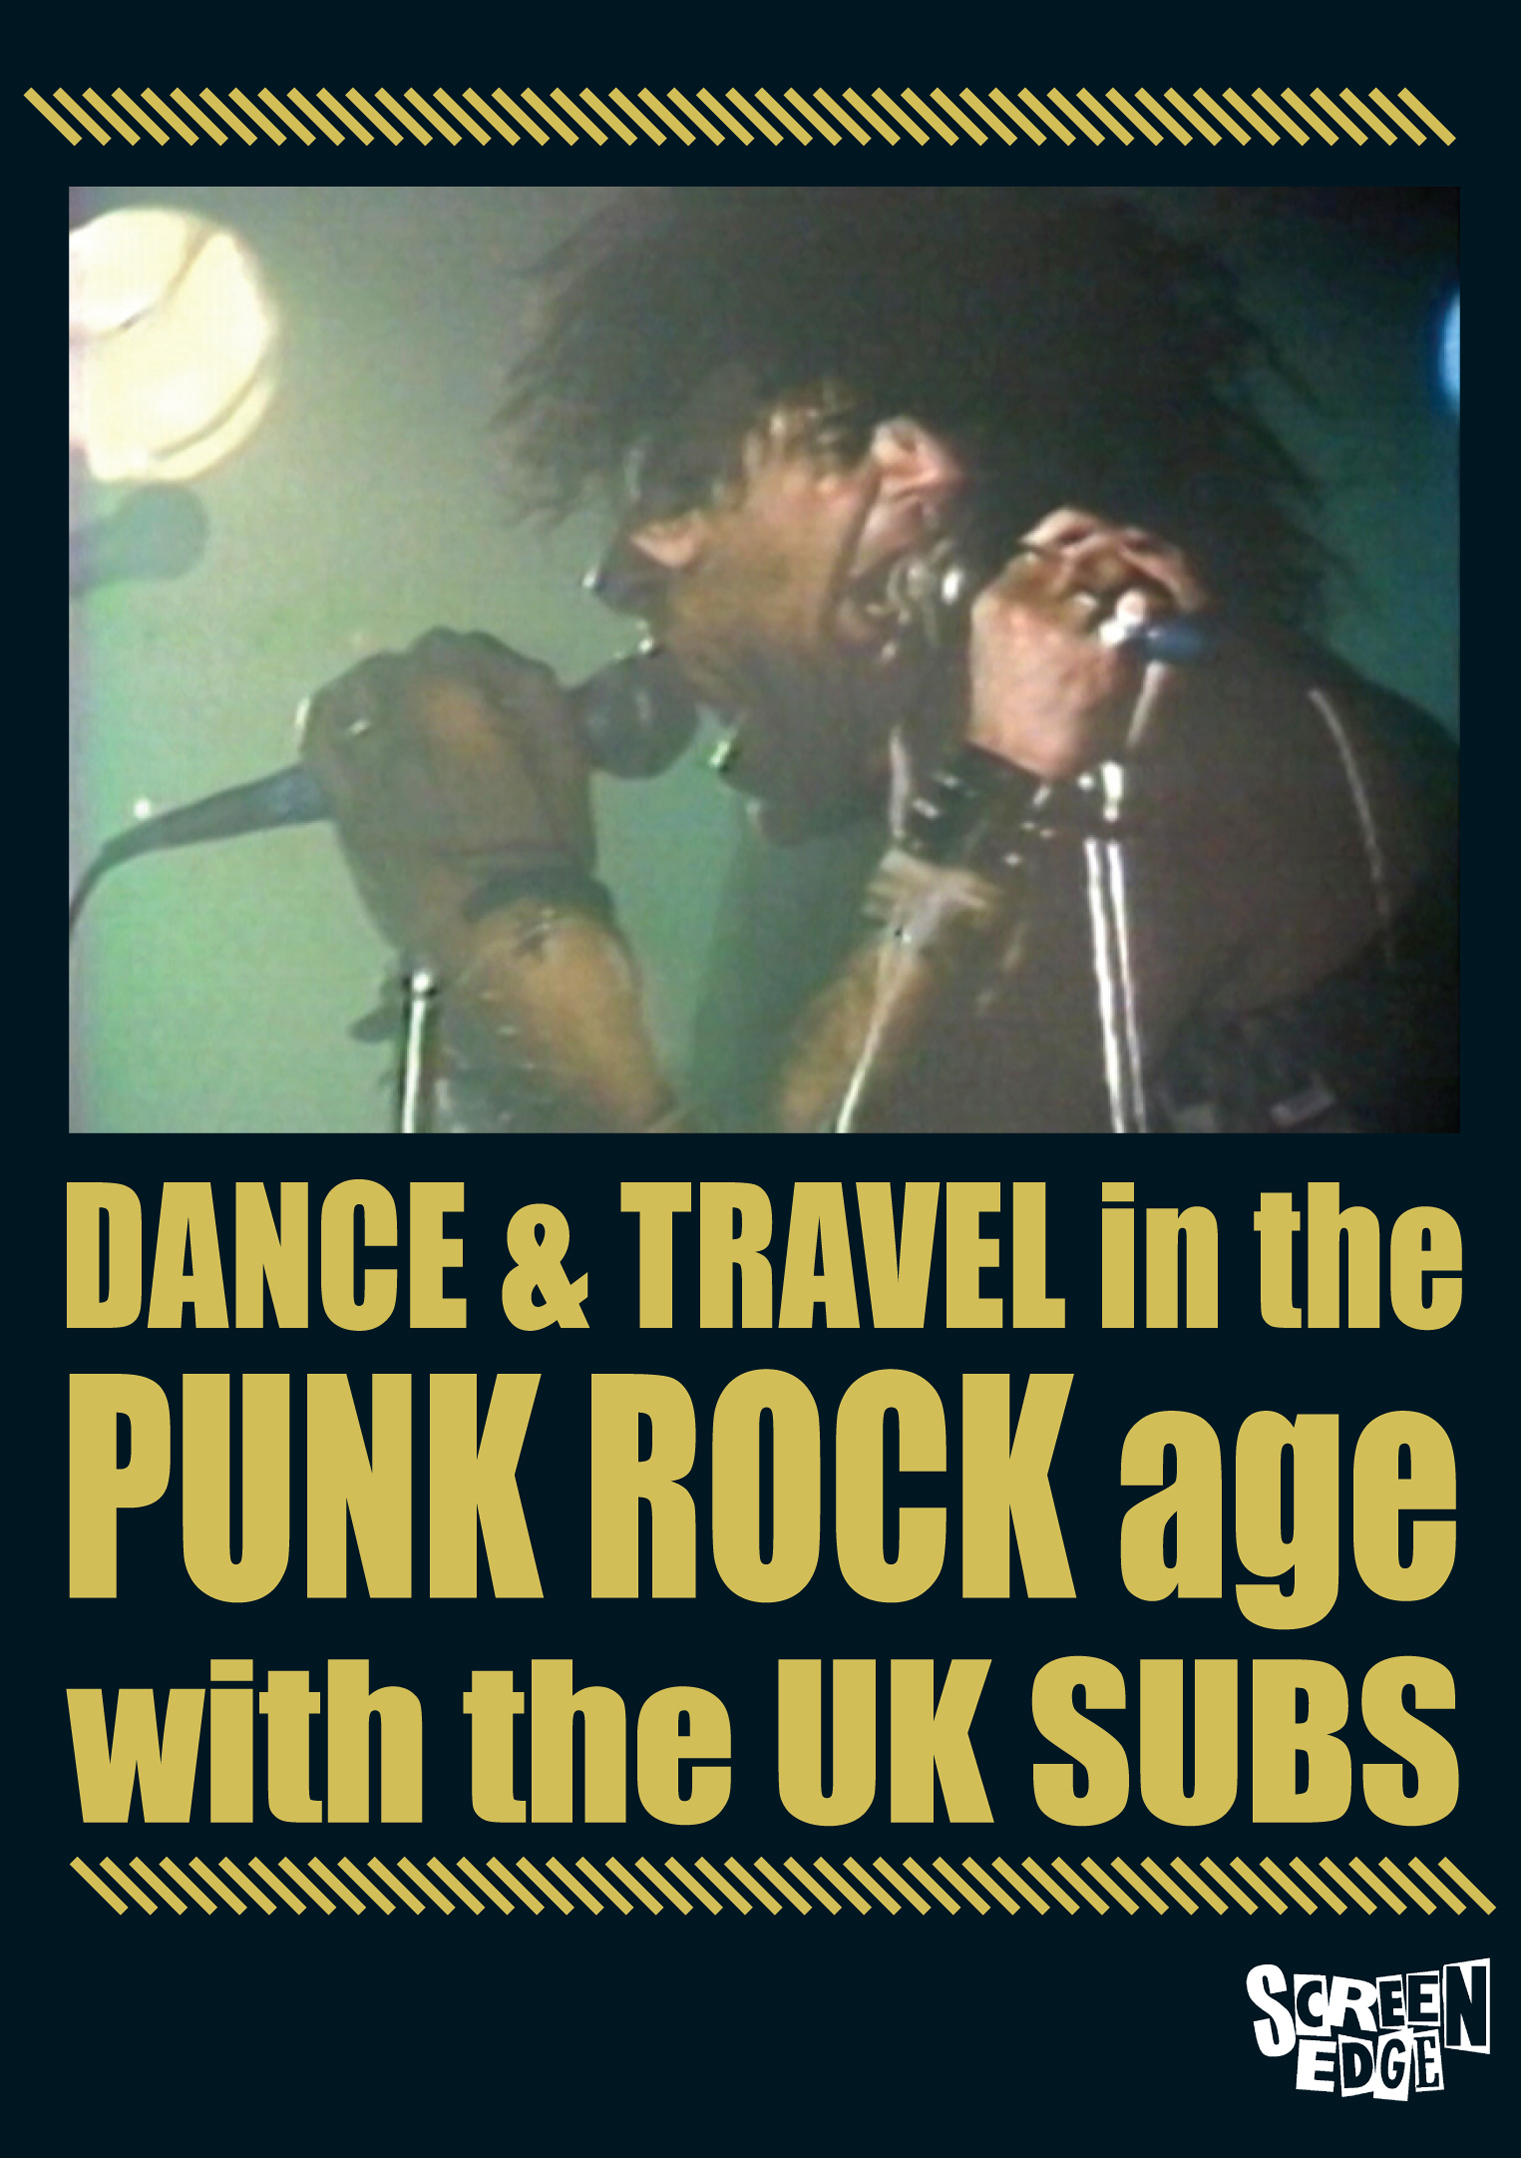 UK Subs: Dance & Travel in the Punk Rock Age